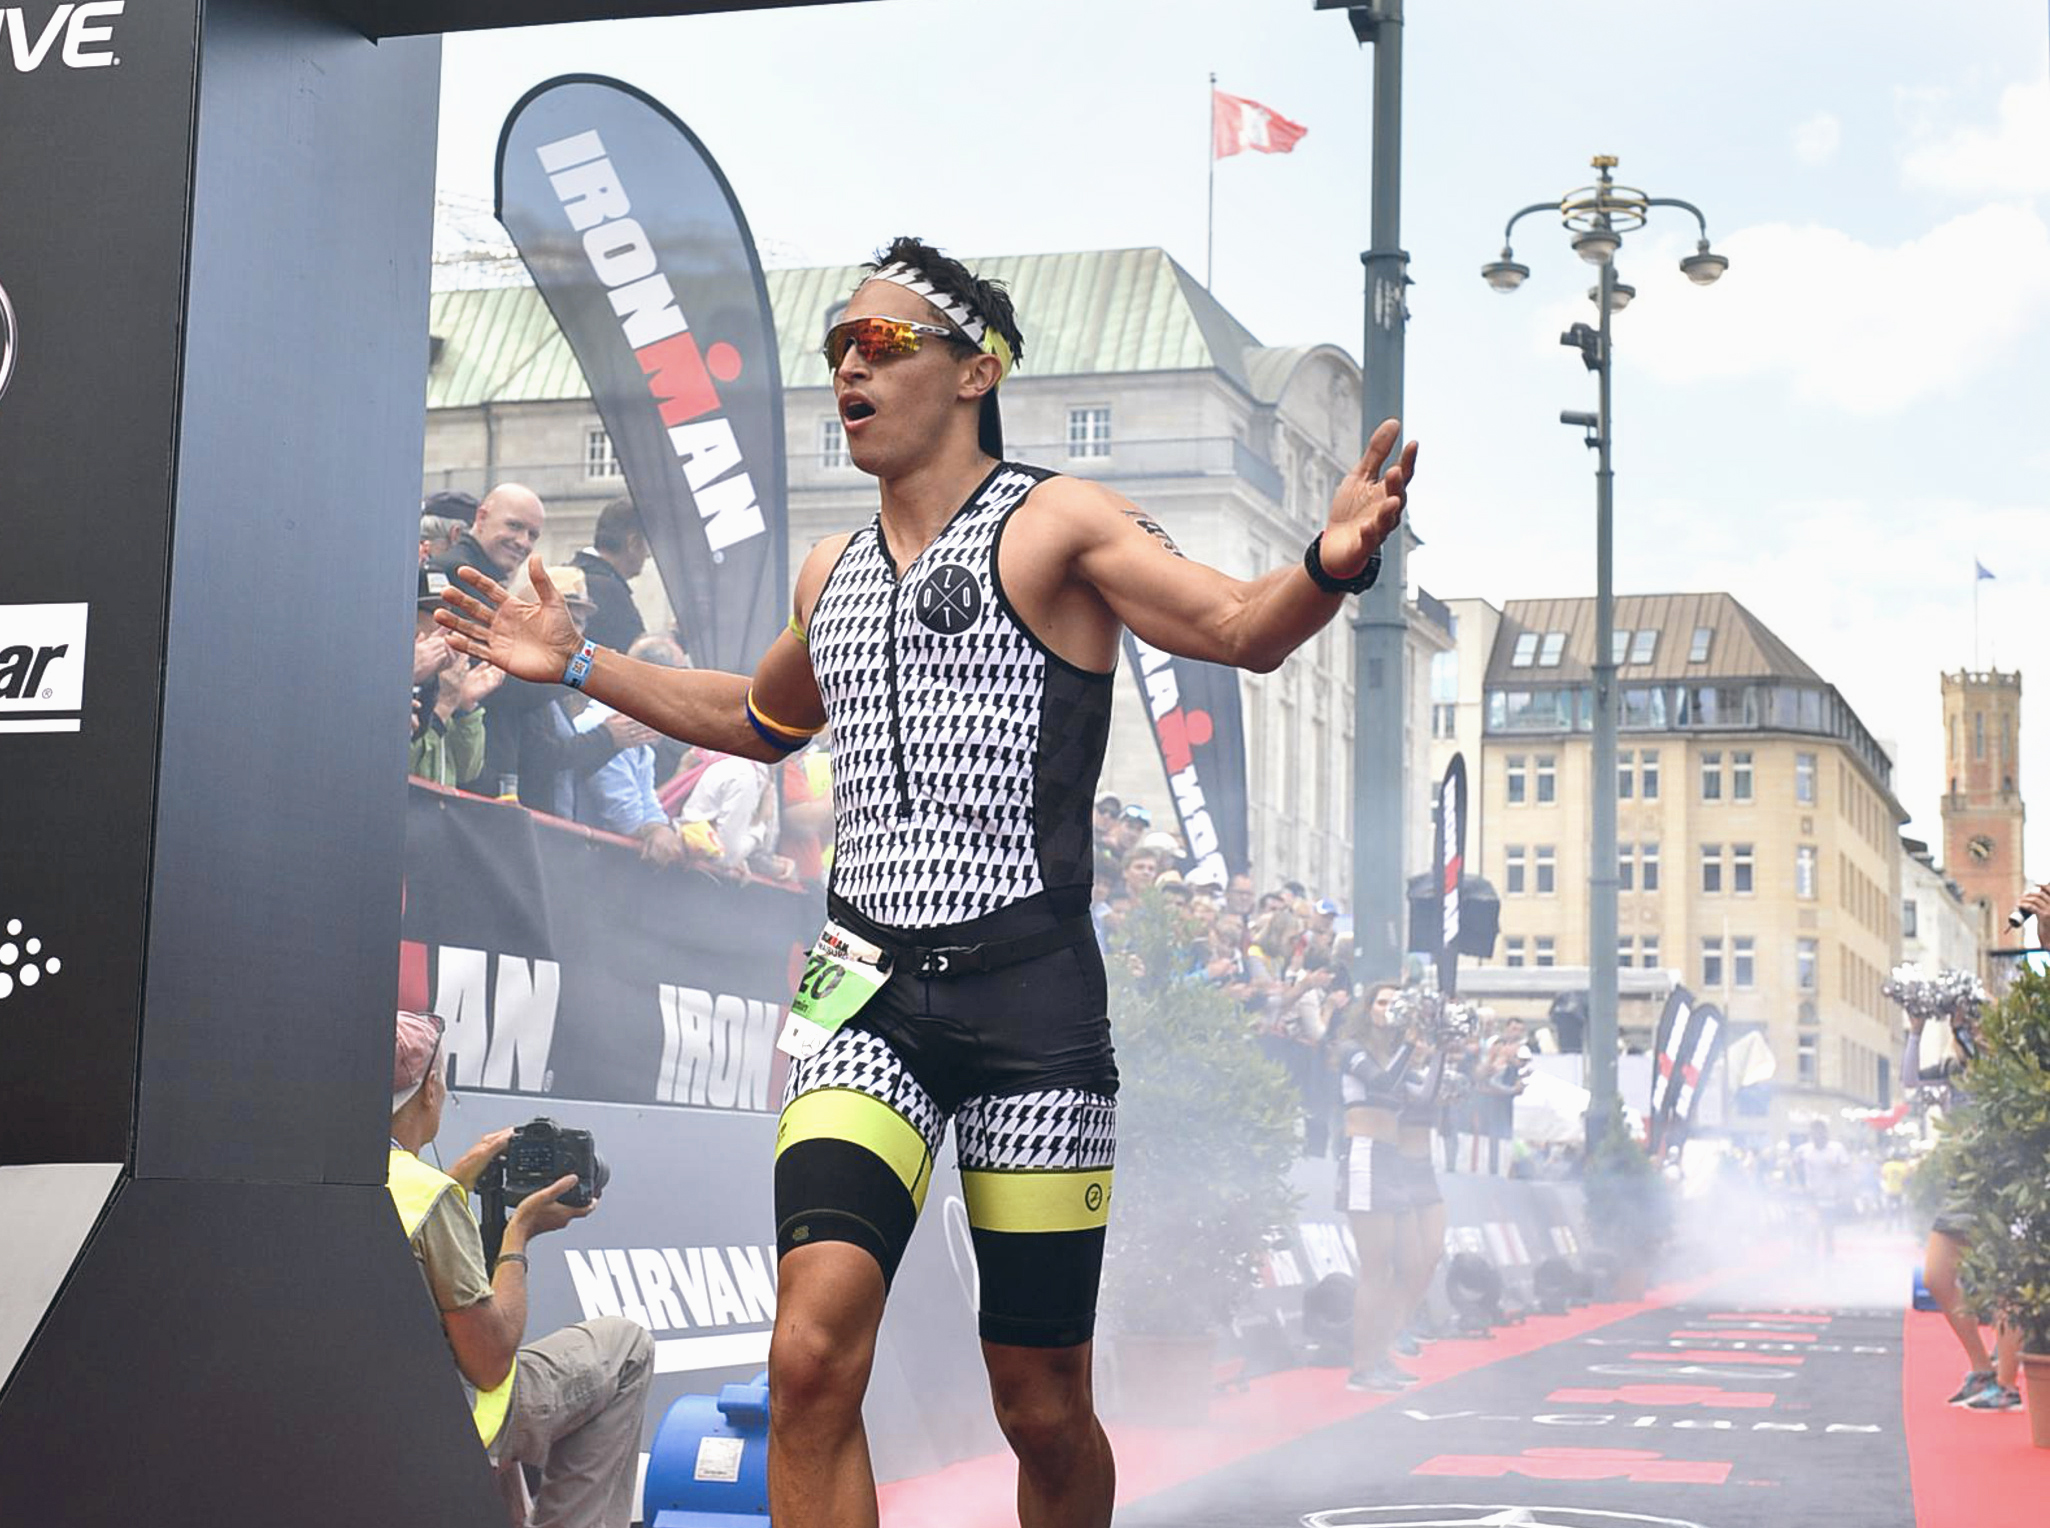 2017 - Finishing on 24th place of the agegroup athletes at the Ironman Hamburg